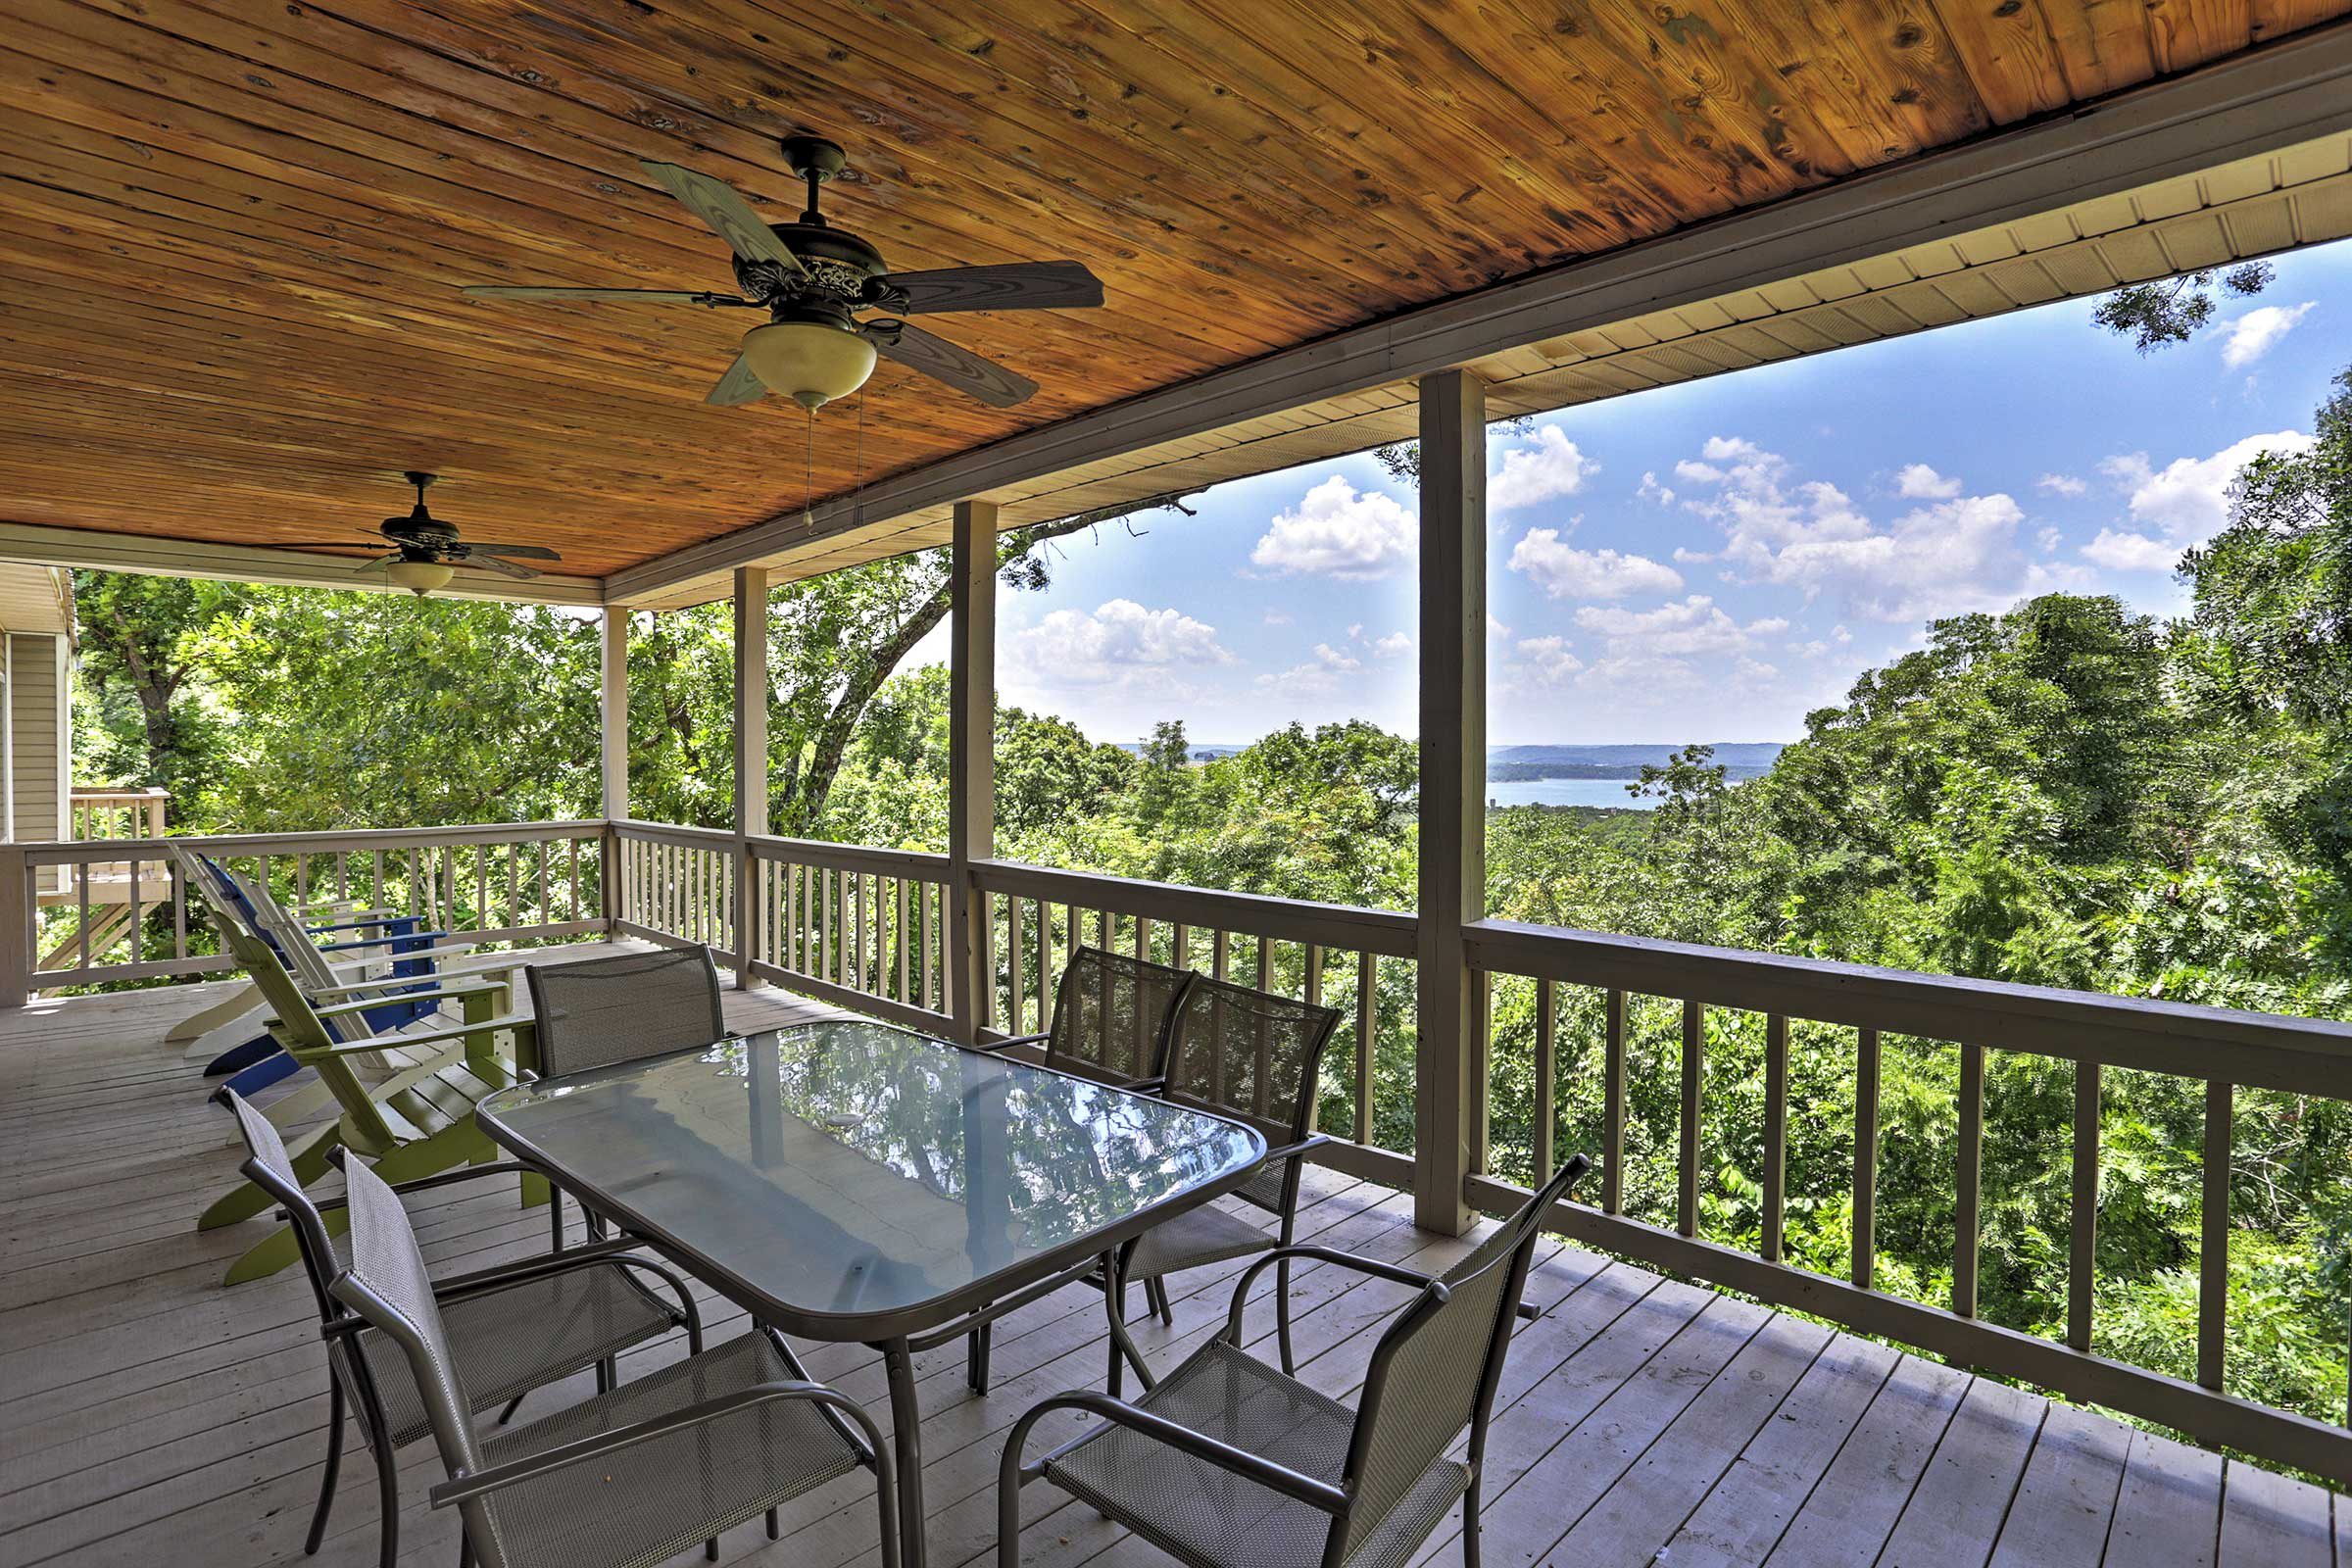 Branson Vacation Rental | 3-Story Home | 4BR | 3.5BA | 7,750 Sq Ft